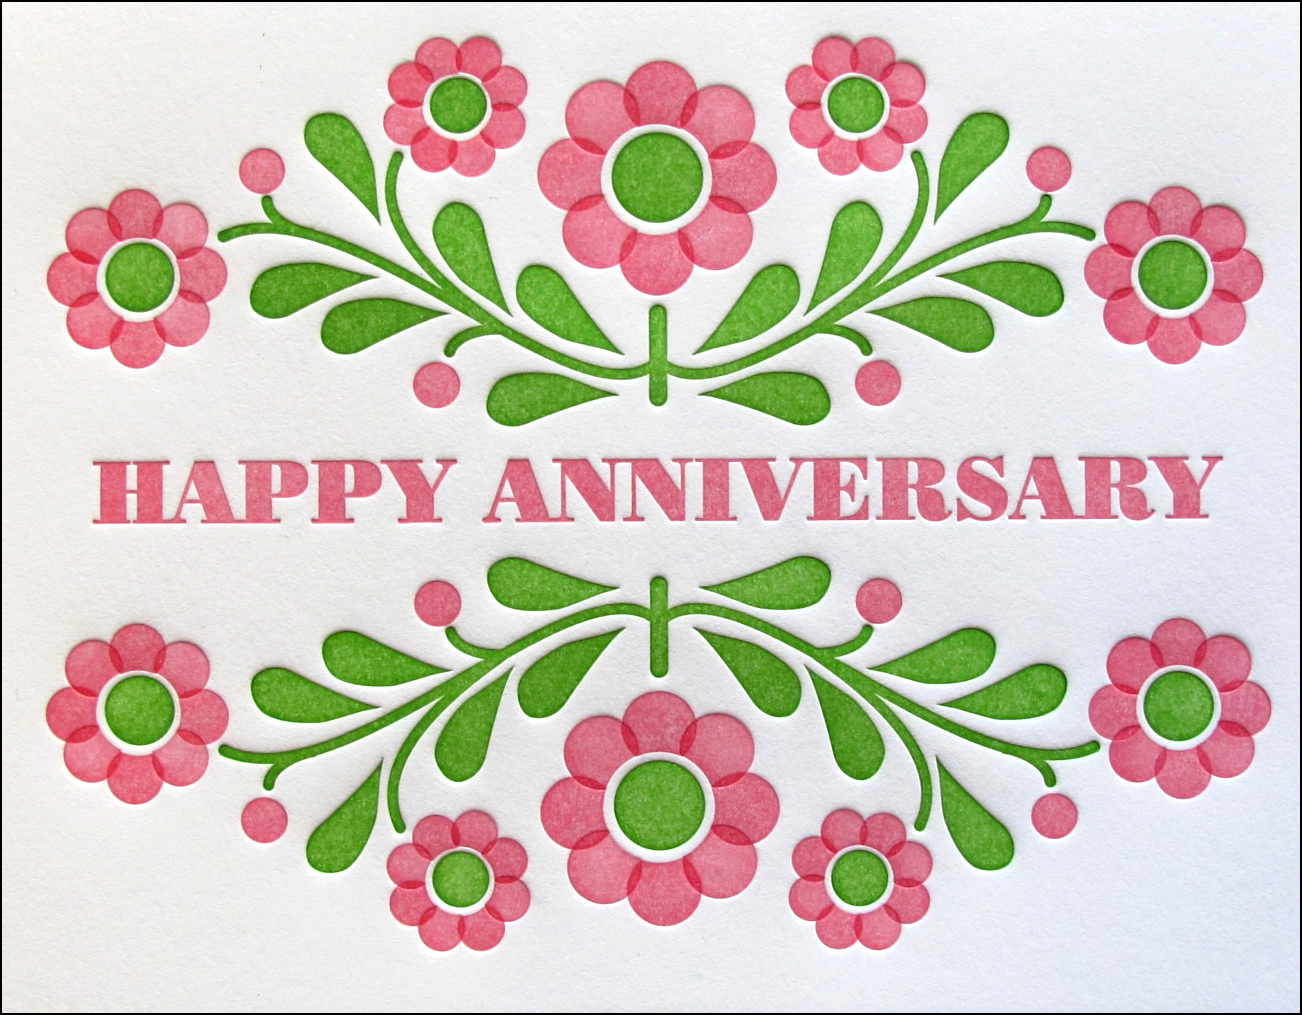 Best happy anniversary cards free to download